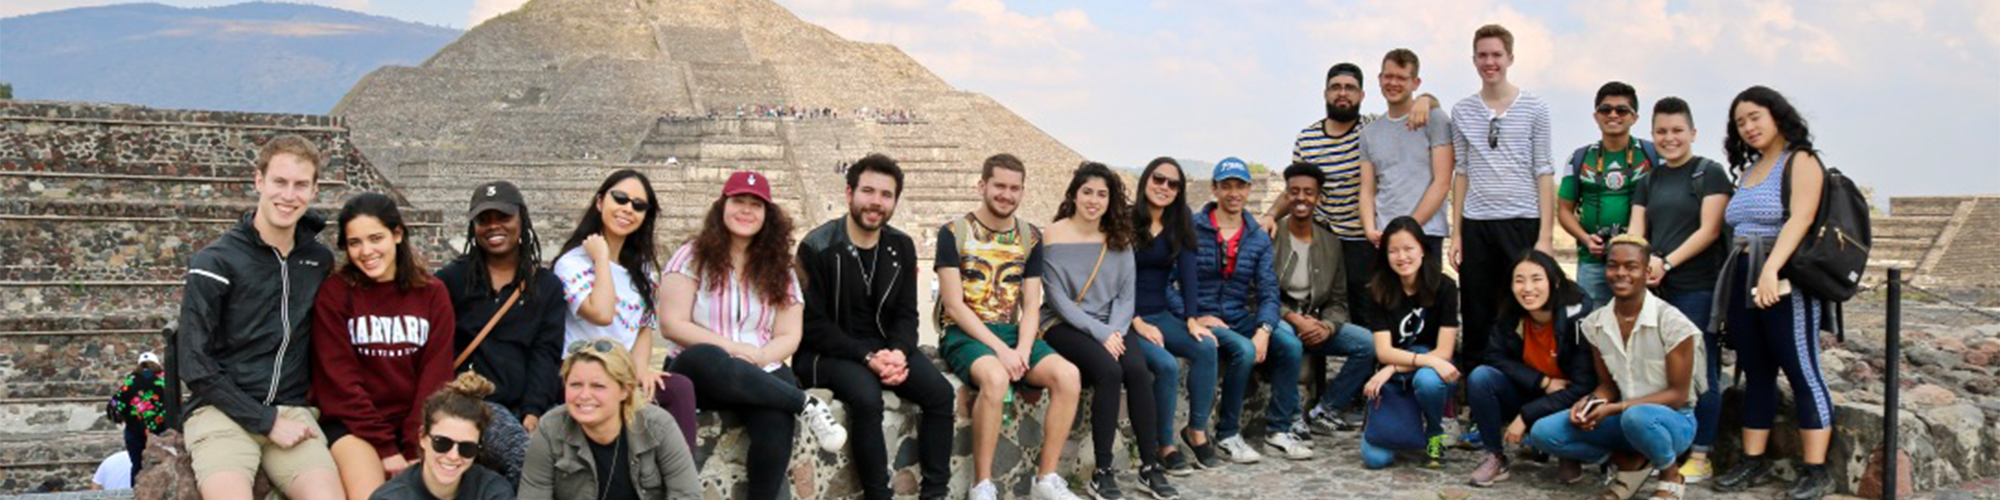 students in front of the pyramids in Mexico